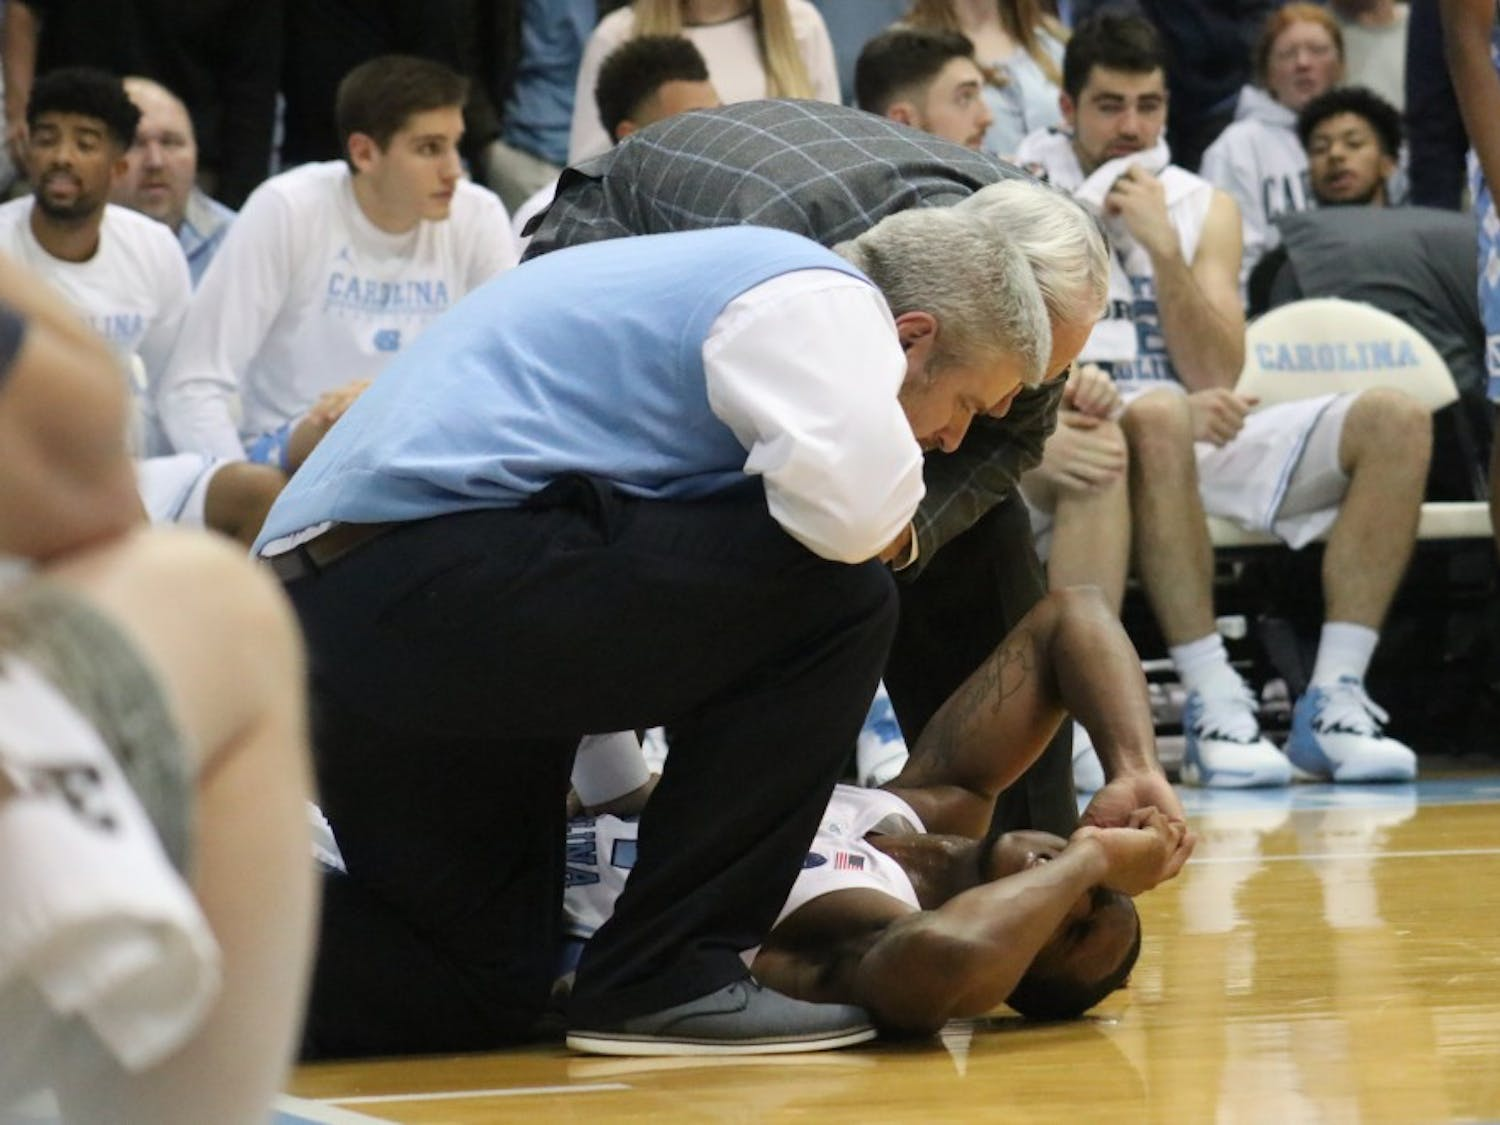 UNC guard Kenny Williams (24) falls after hurting his ankle against Tennessee Tech on November 16th in the Dean Dome.